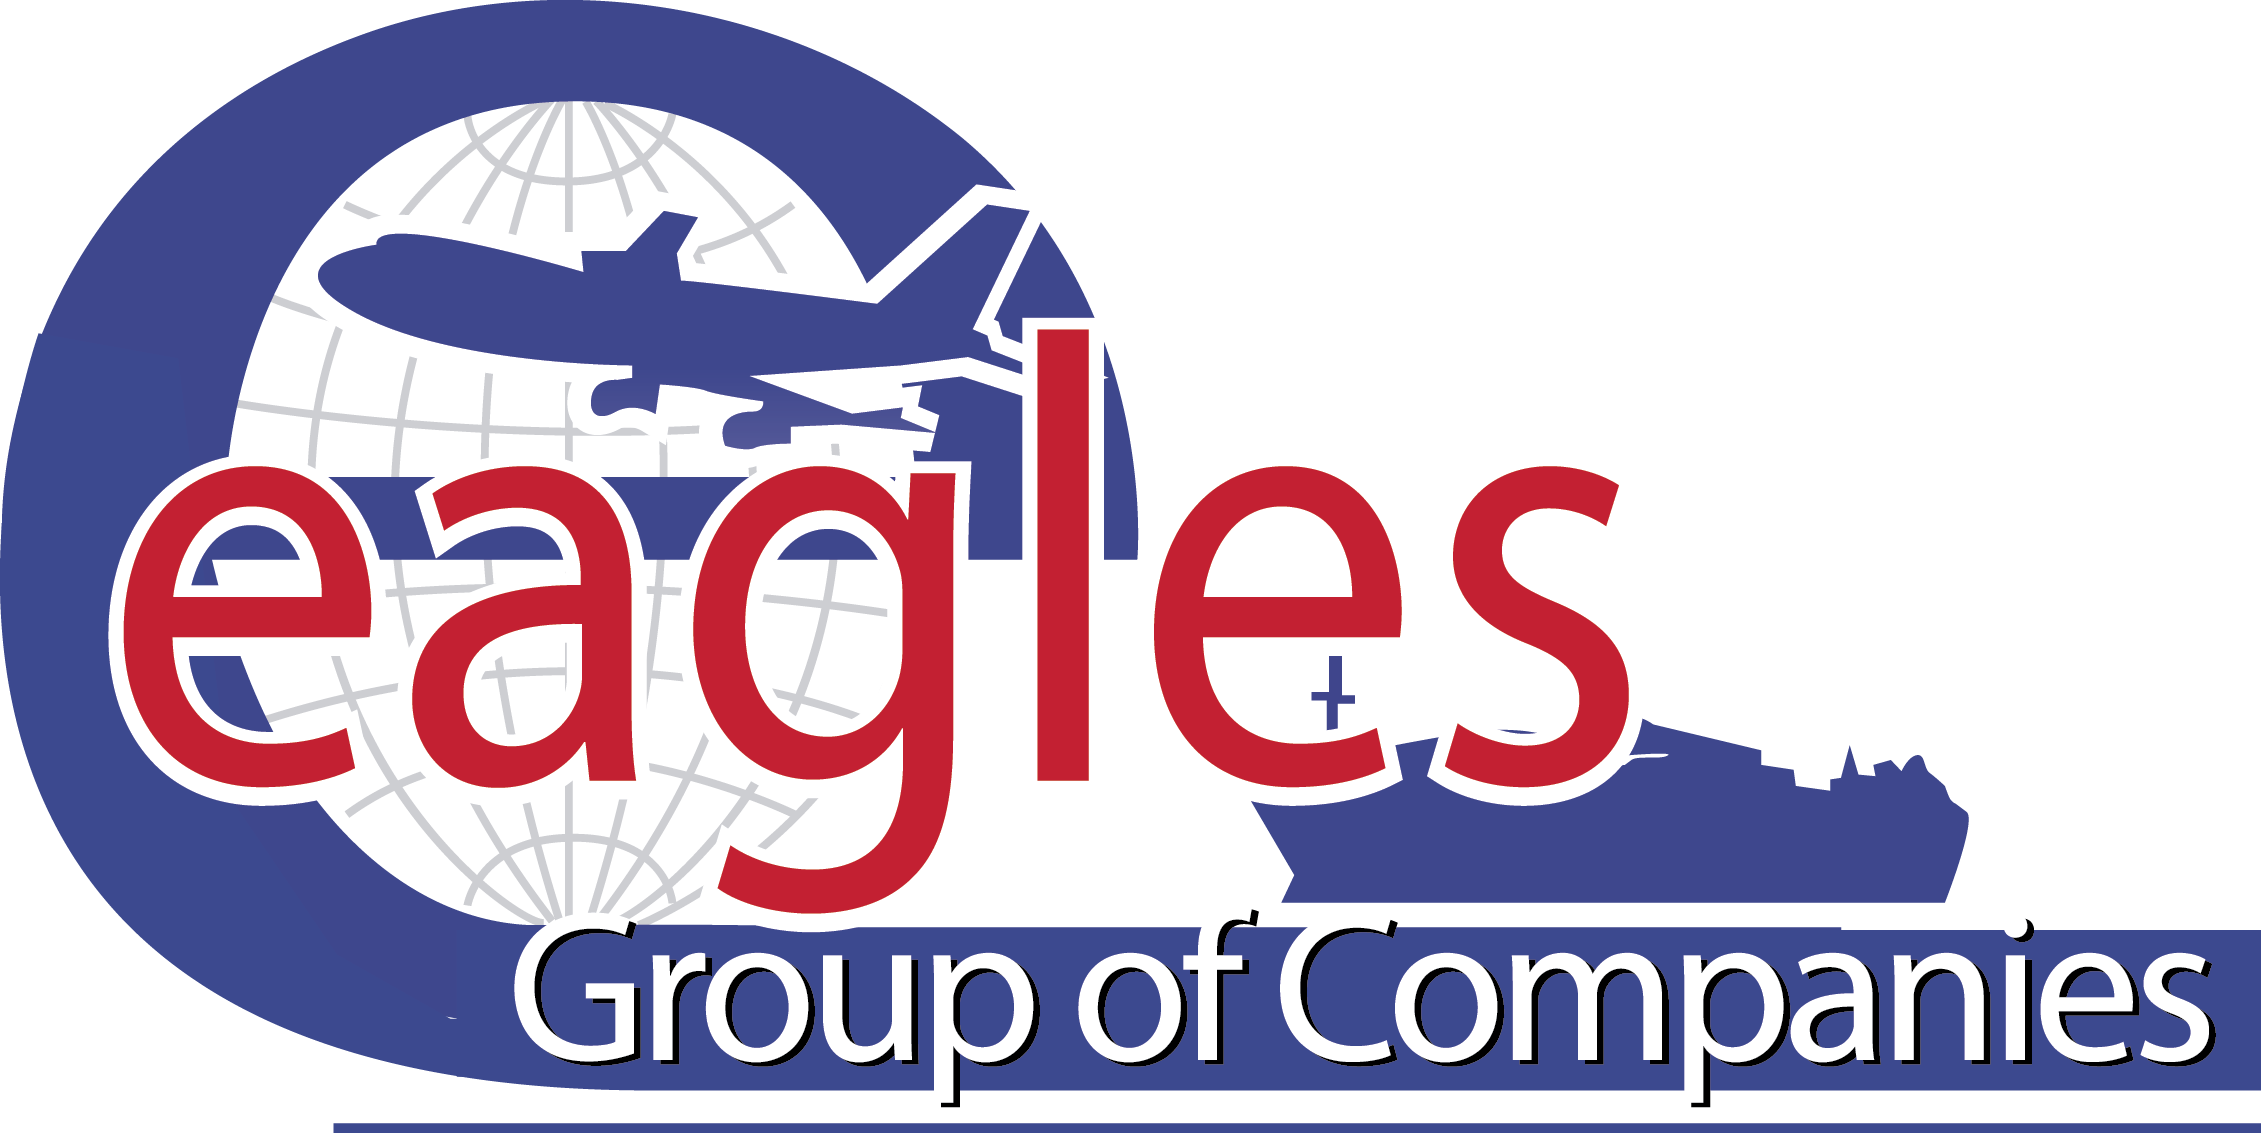 Eagles Air & Sea (Thailand) Co., Ltd.